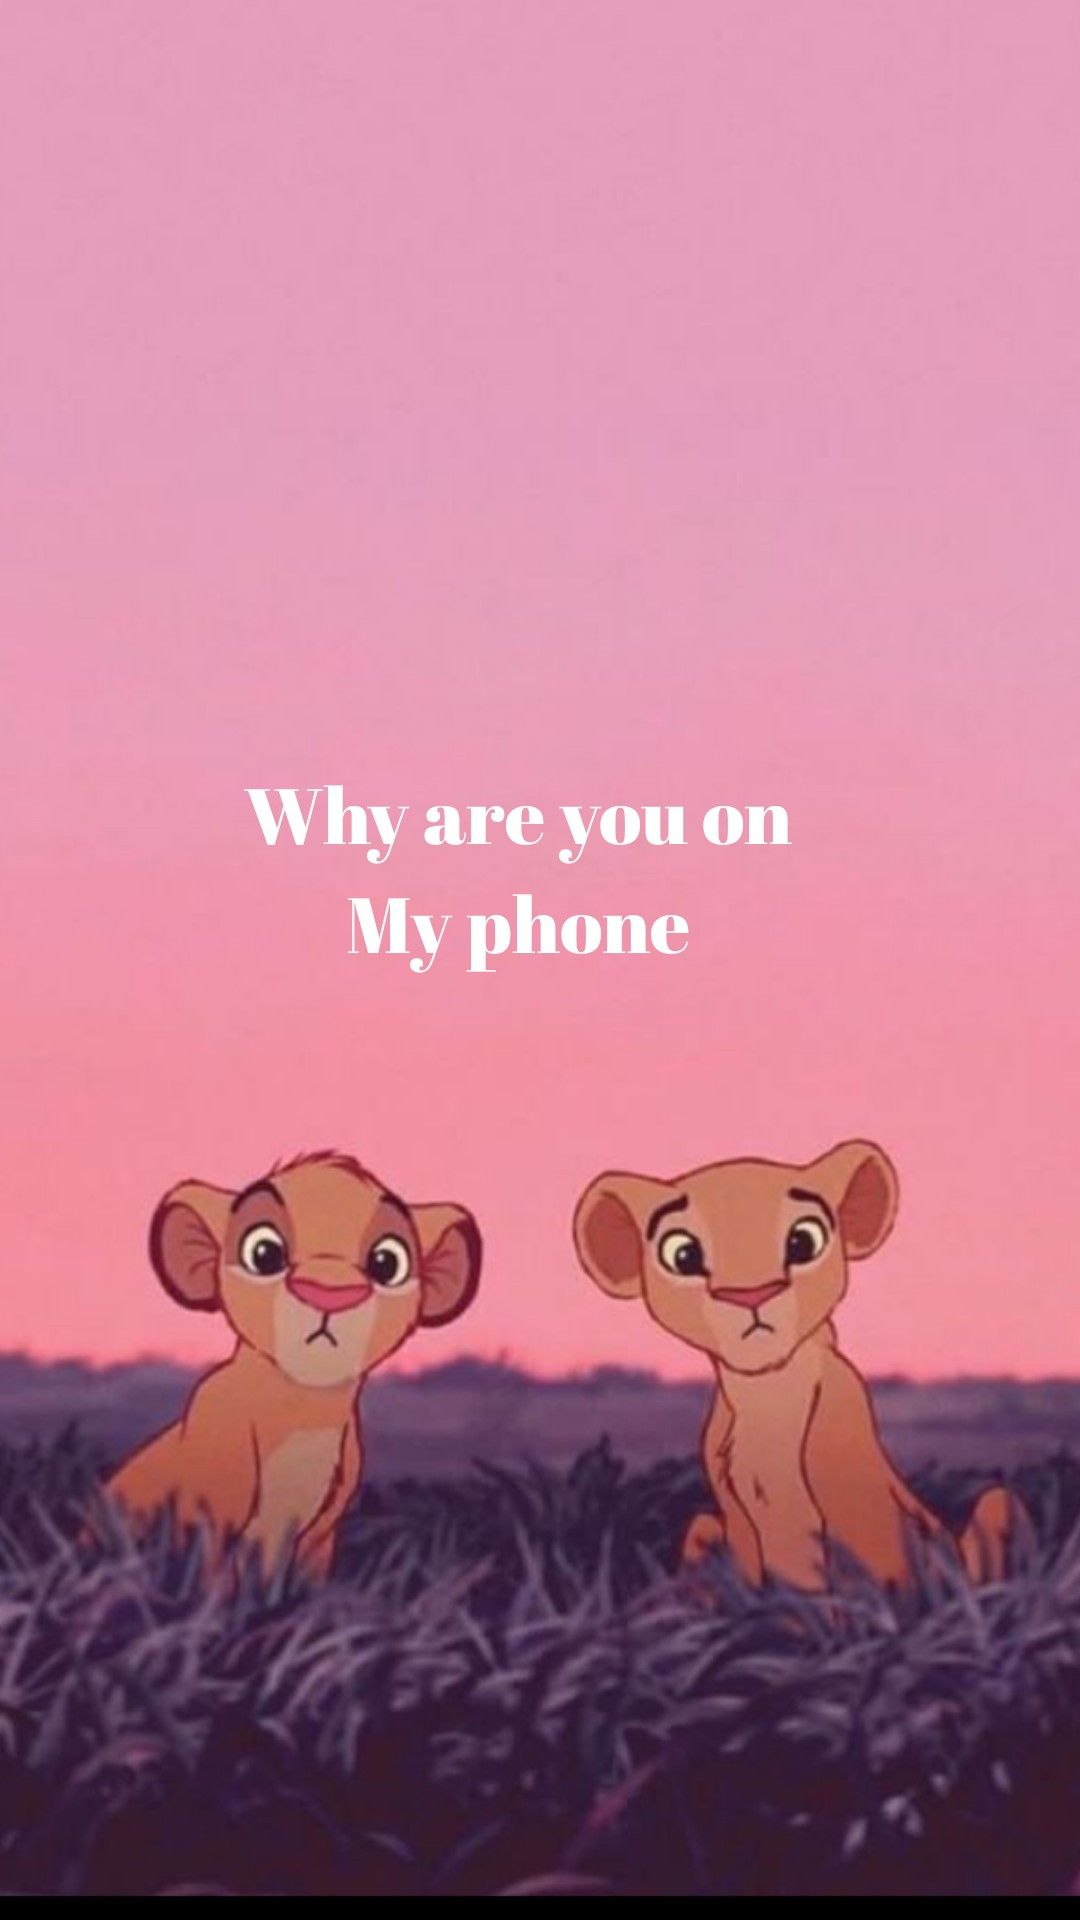 "Fond d'écran le roi lion "" why are you on my phone"